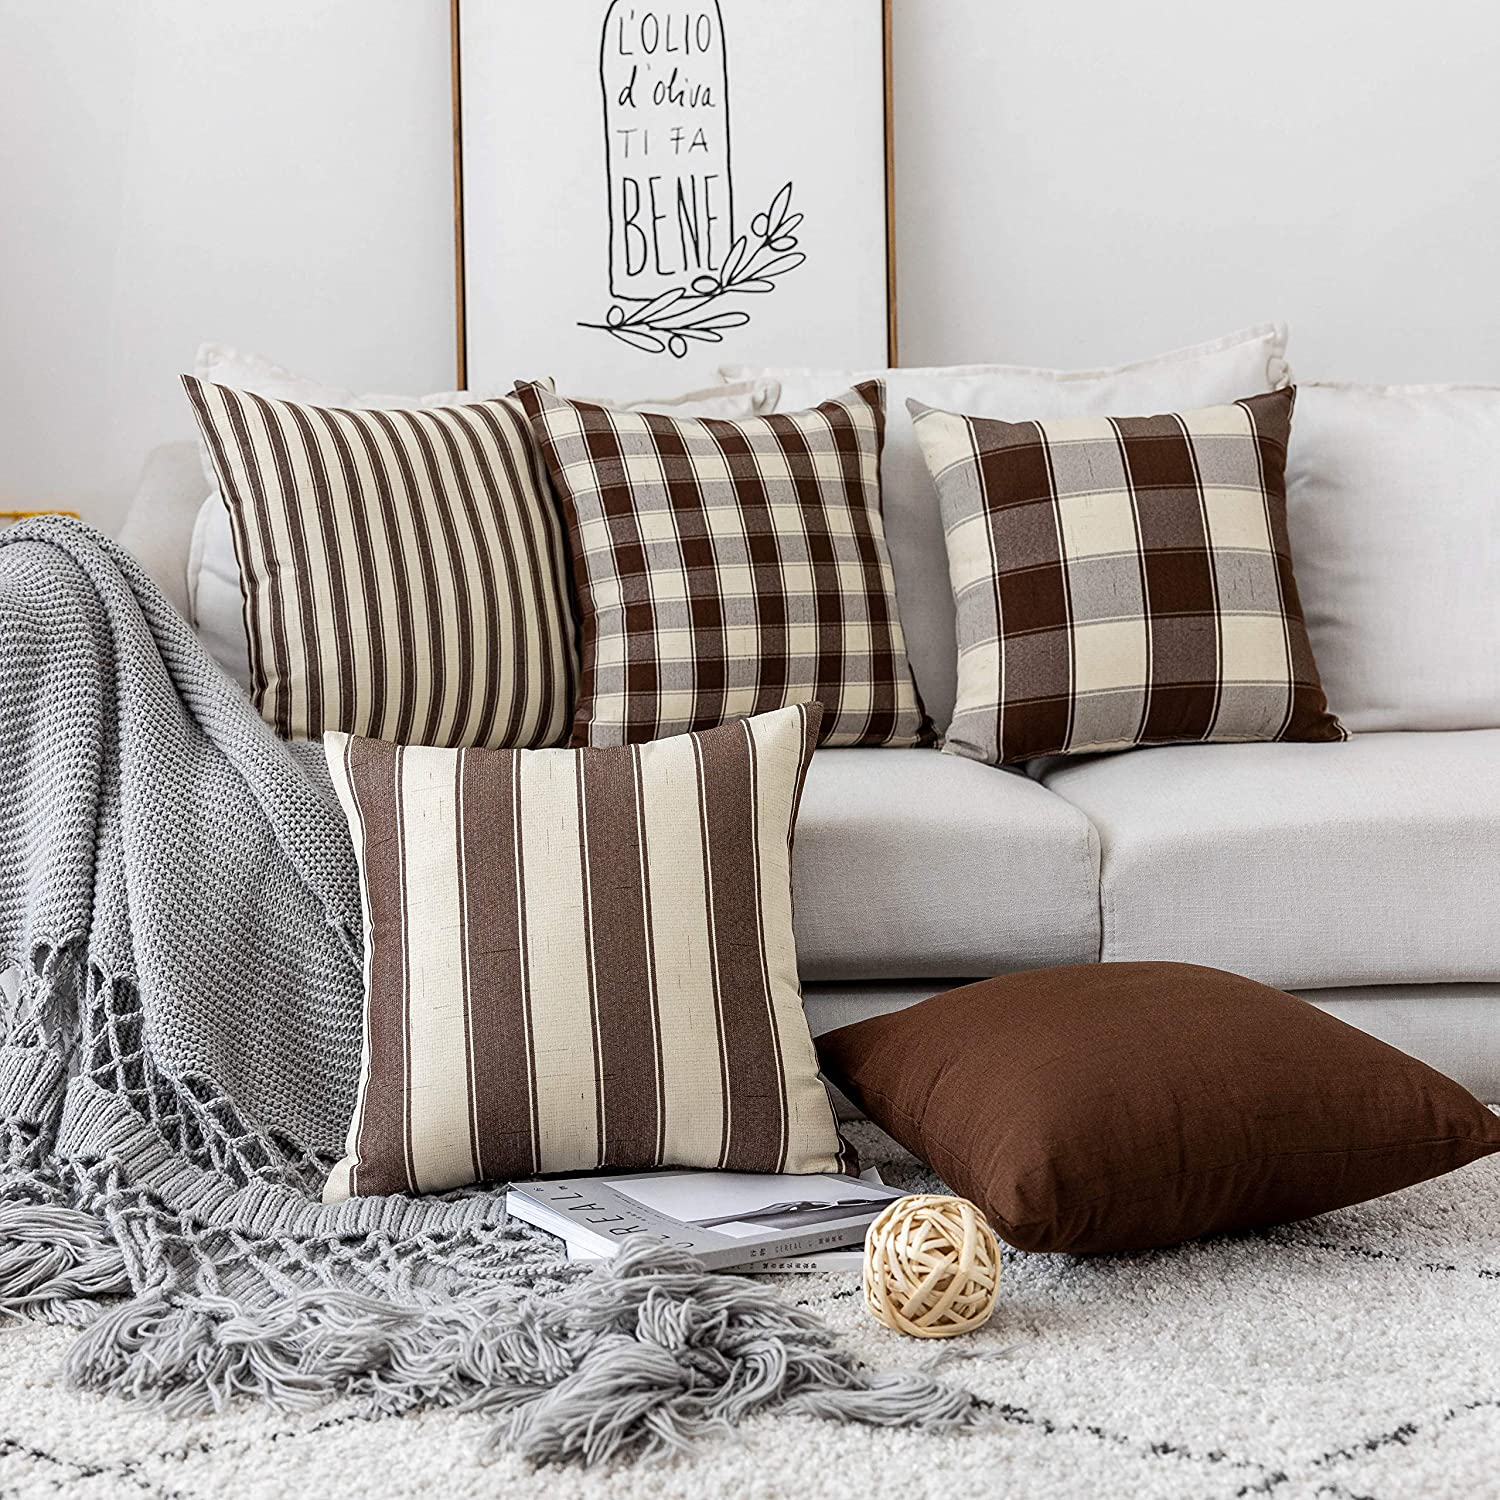 Home Brilliant Fall Winter Decor Throw Pillow Covers Set Solid Decorative Pillowcases Farrmhouse Linen Cushion Covers for Couch Bed, 5 Pieces, Cocoa Brown and Cream, 18x18 inches (45cm)